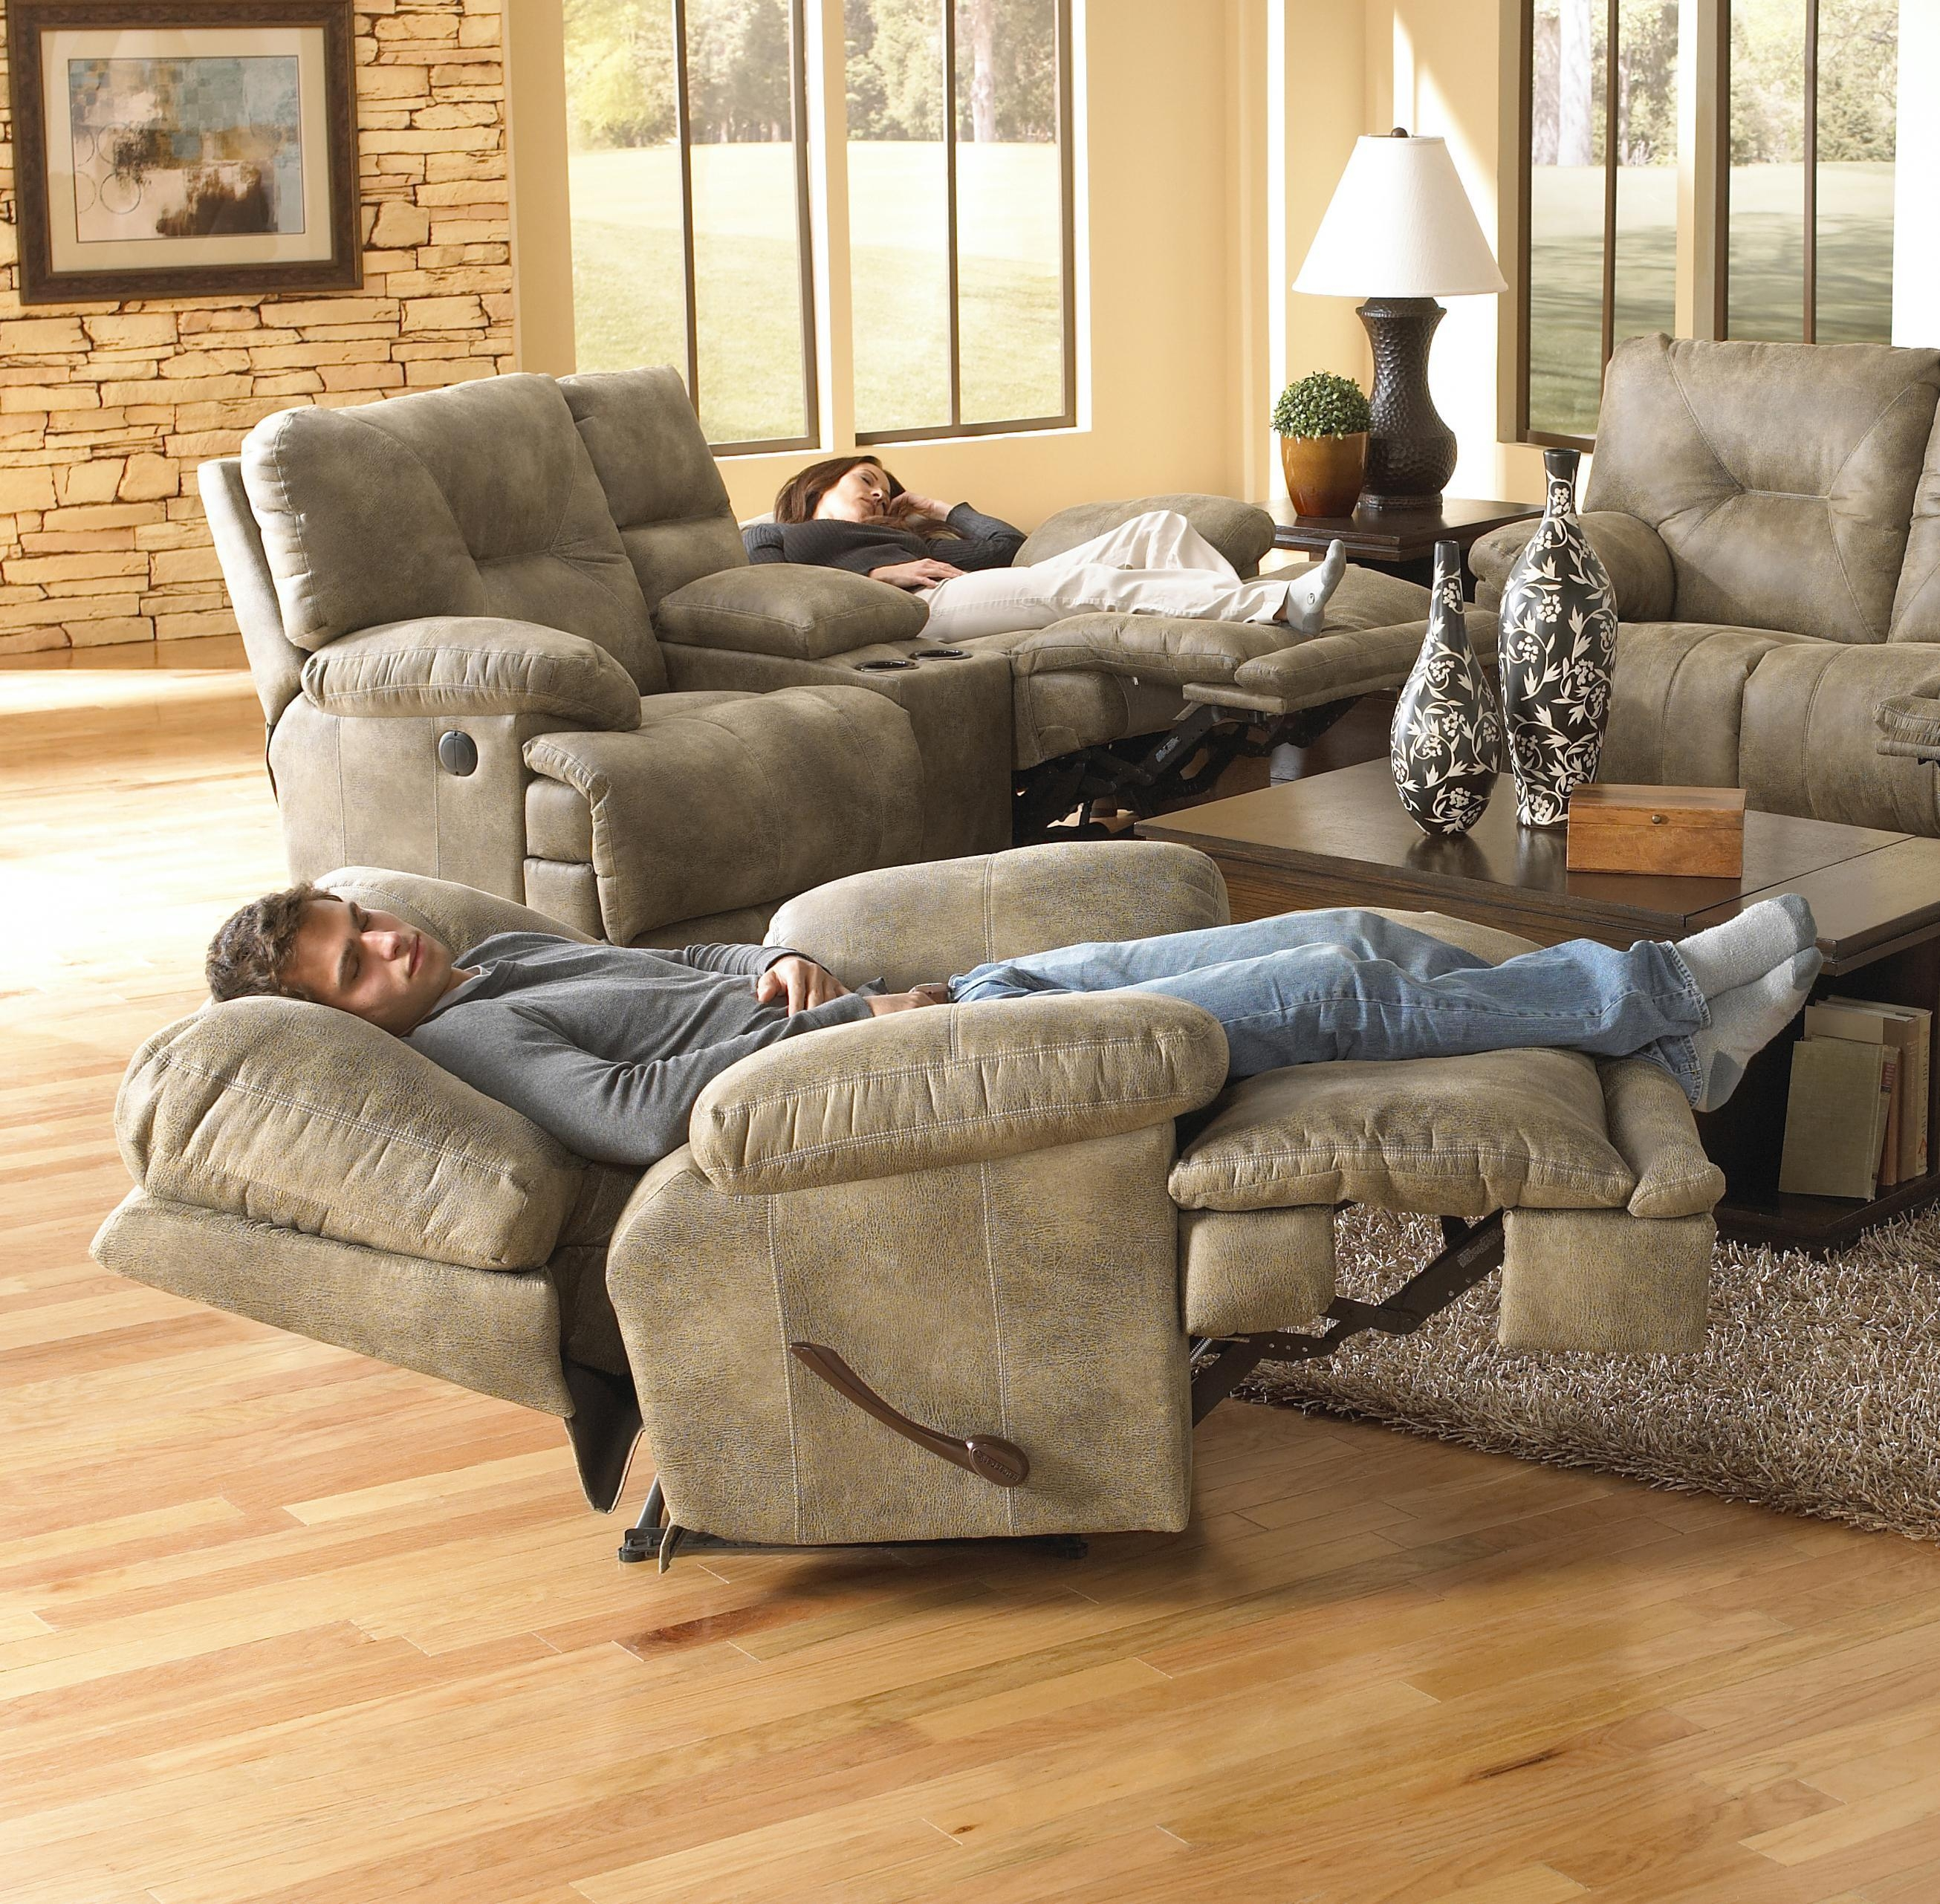 Furniture: Captivating Catnapper Recliner For Best Furniture Idea Regarding Catnapper Reclining Sofas (View 13 of 20)